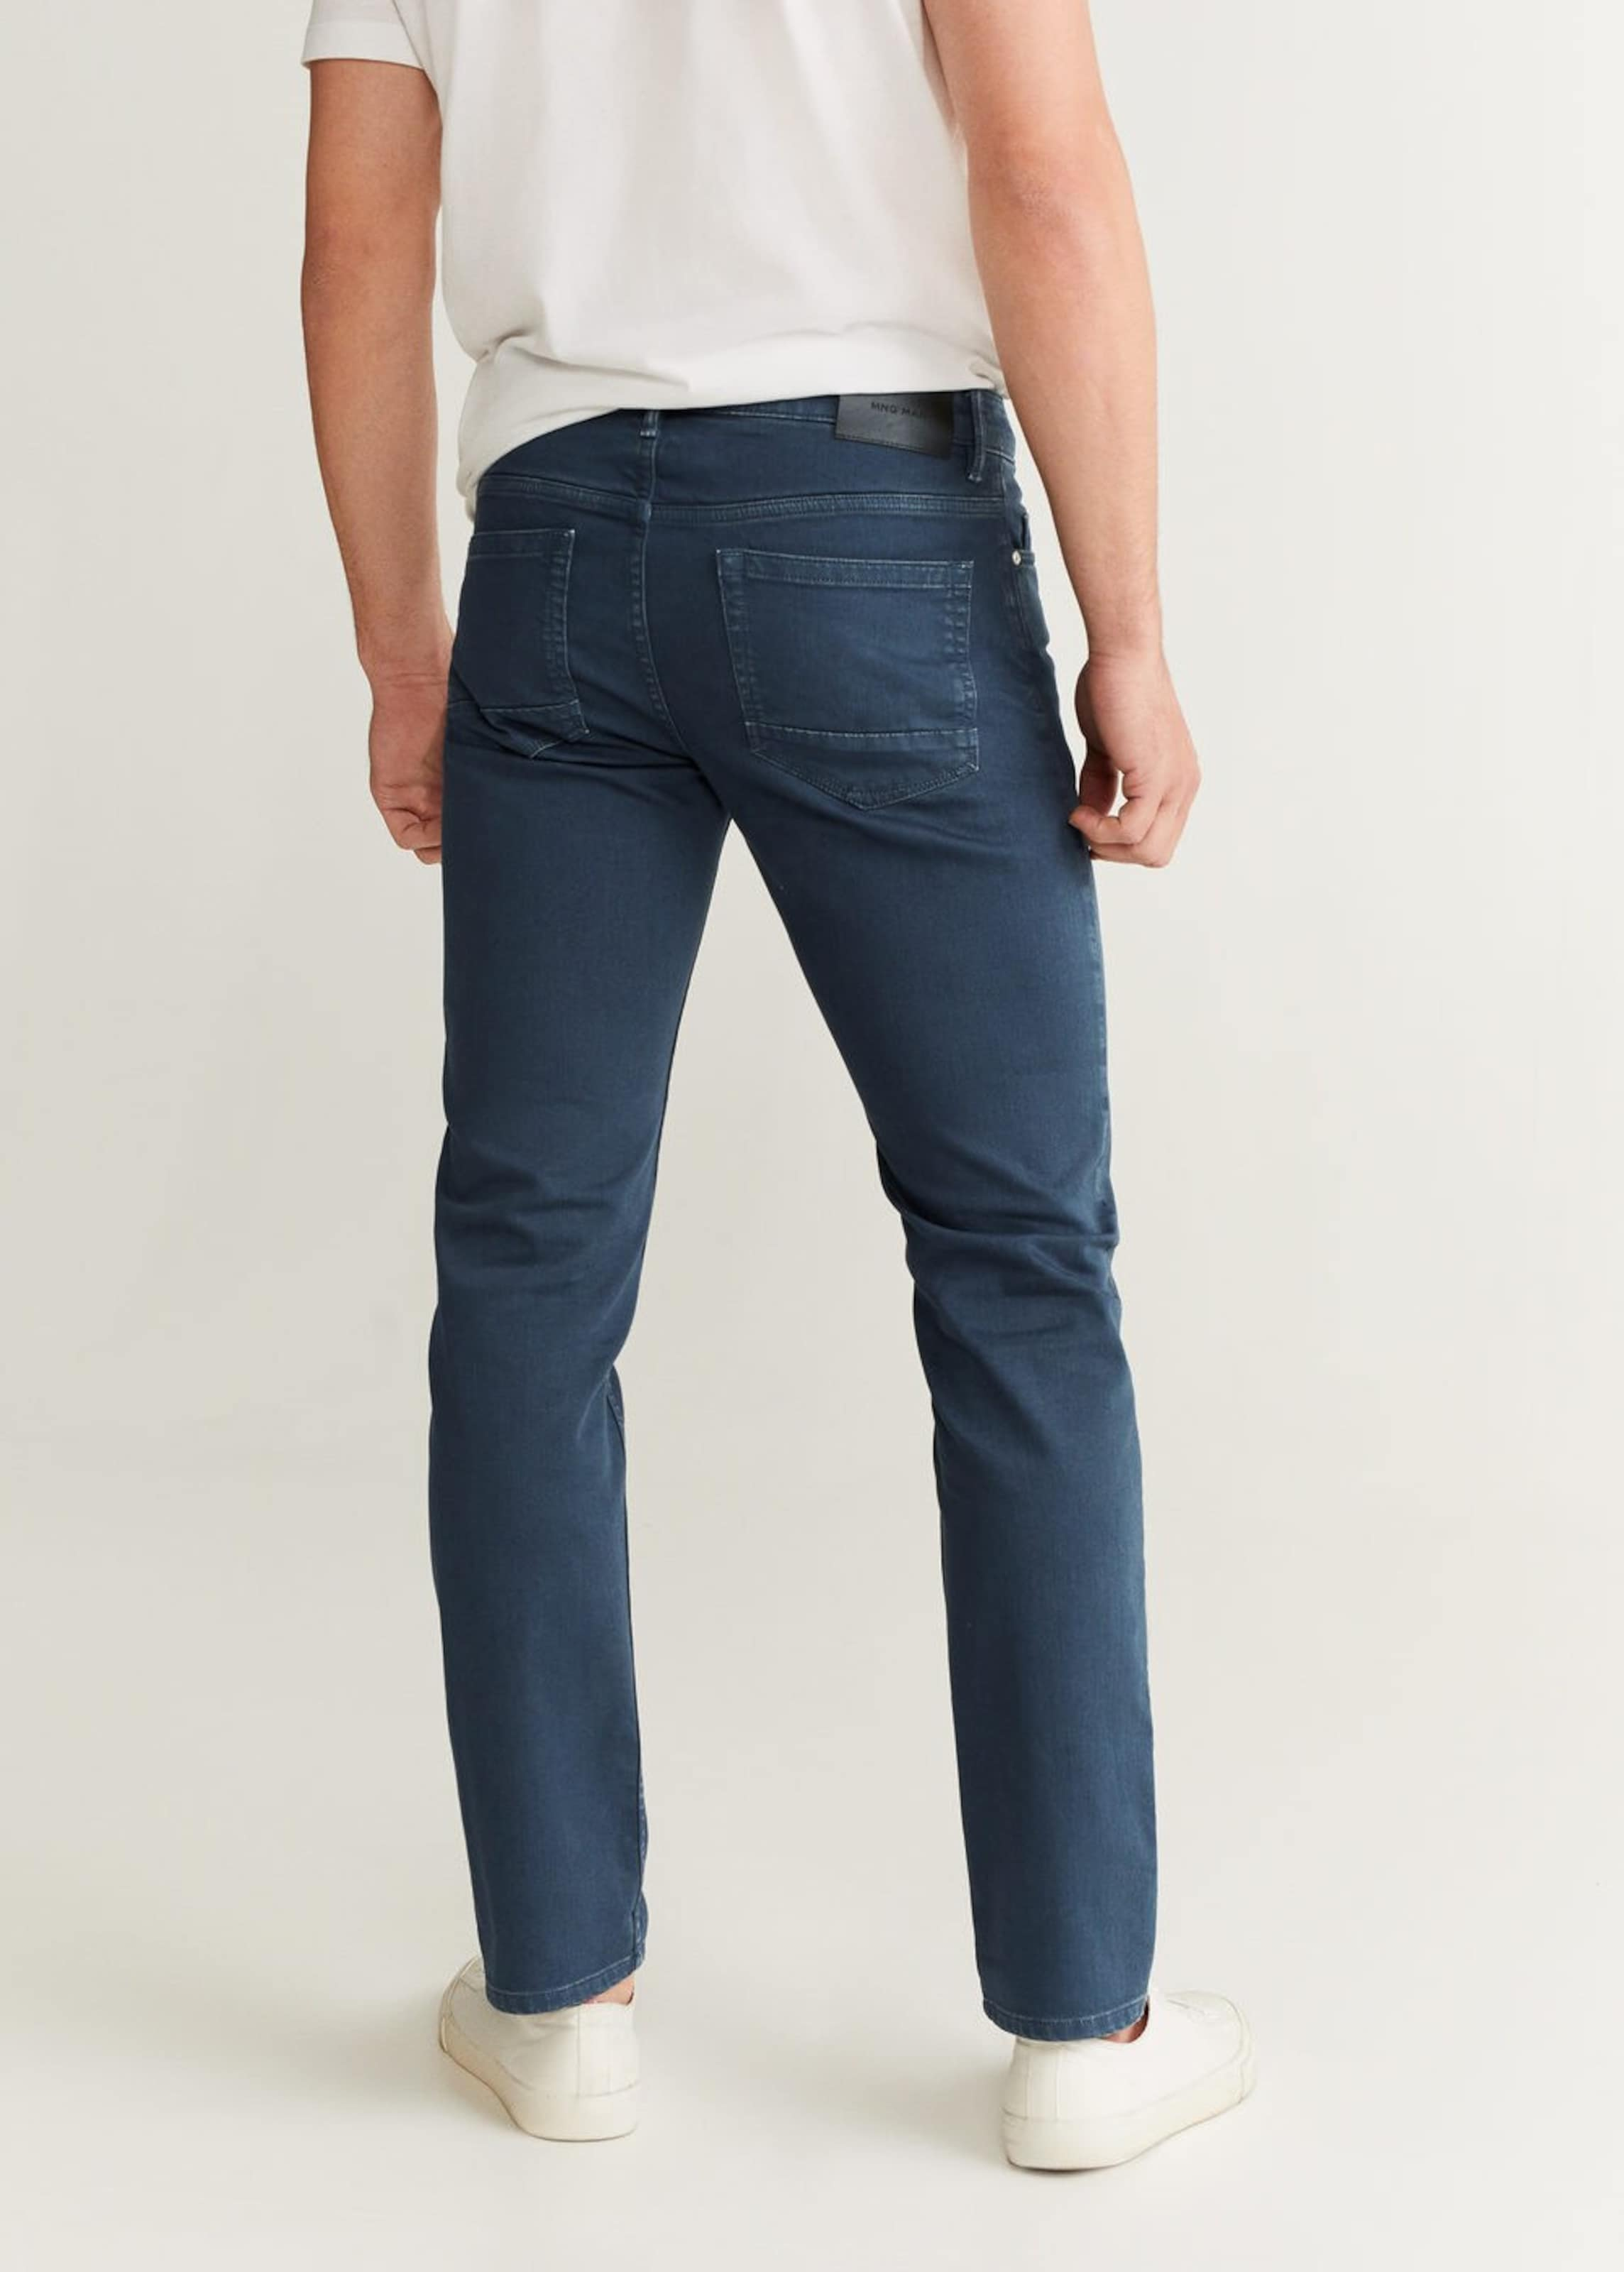 In Jeans Mango Denim Blue Man 'alex5' YeDI29HWE